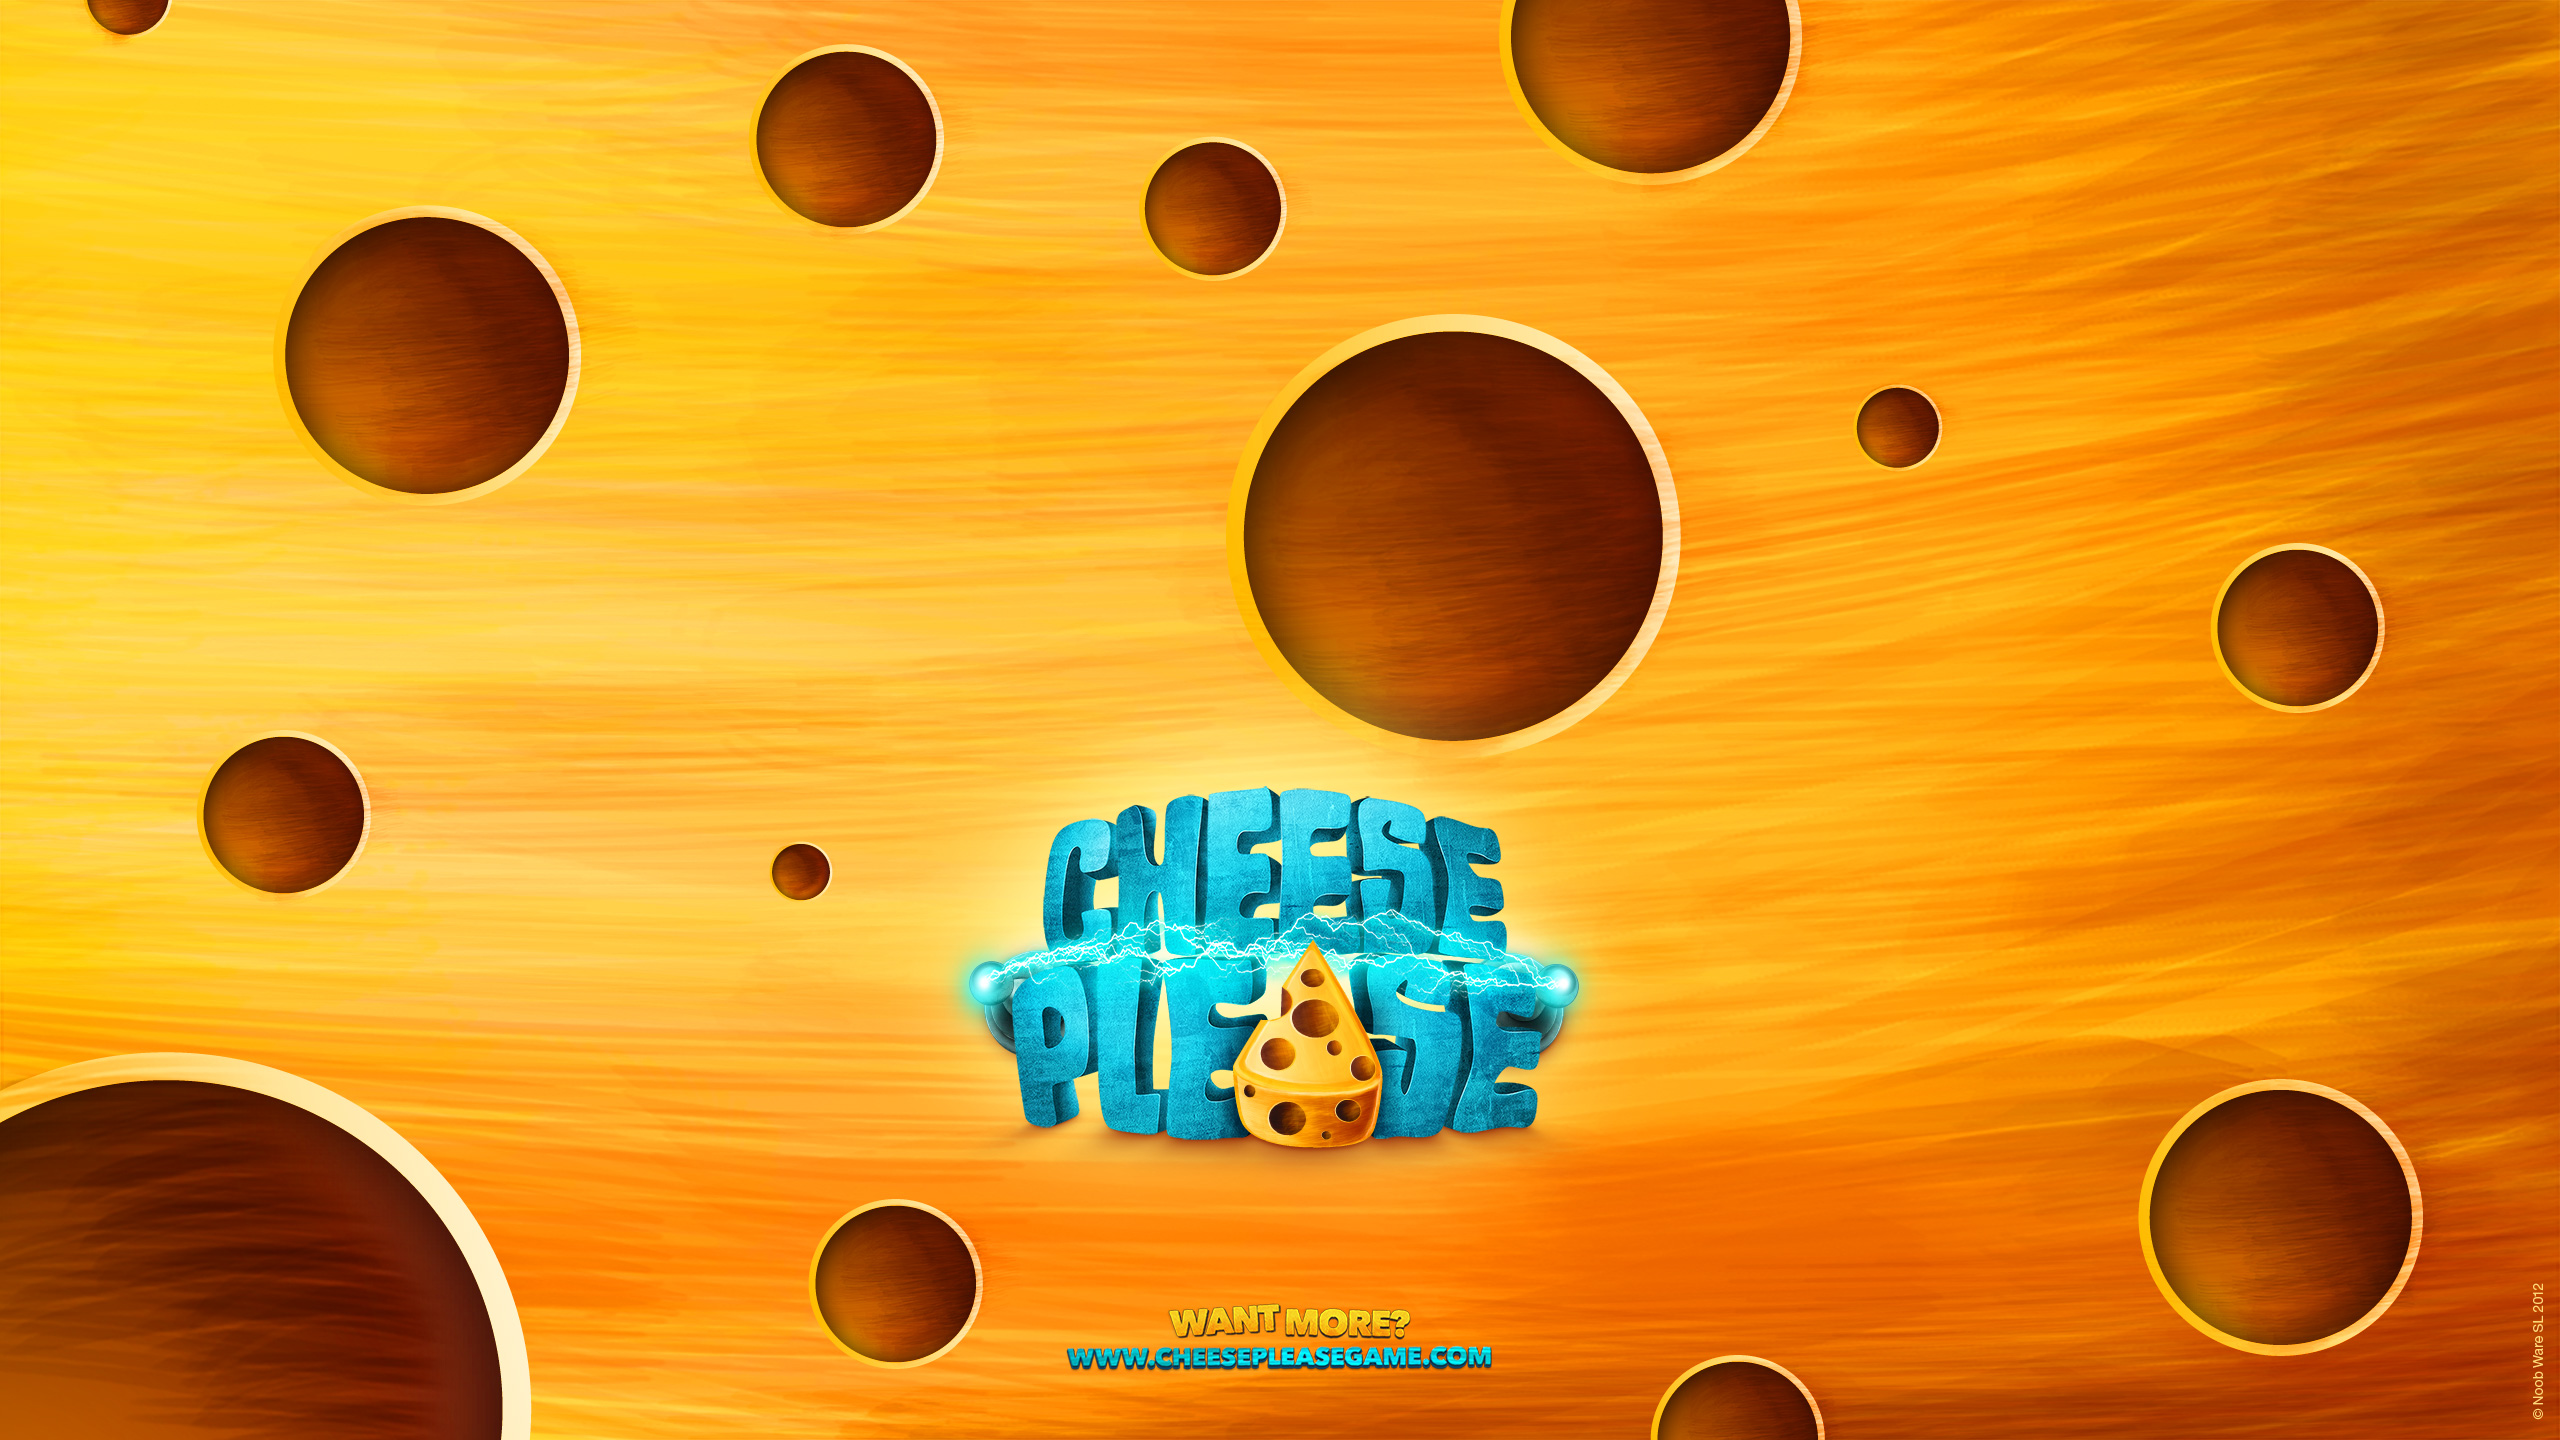 Cheese Please™ Wallpapers For IPhone, IPad, Desktop